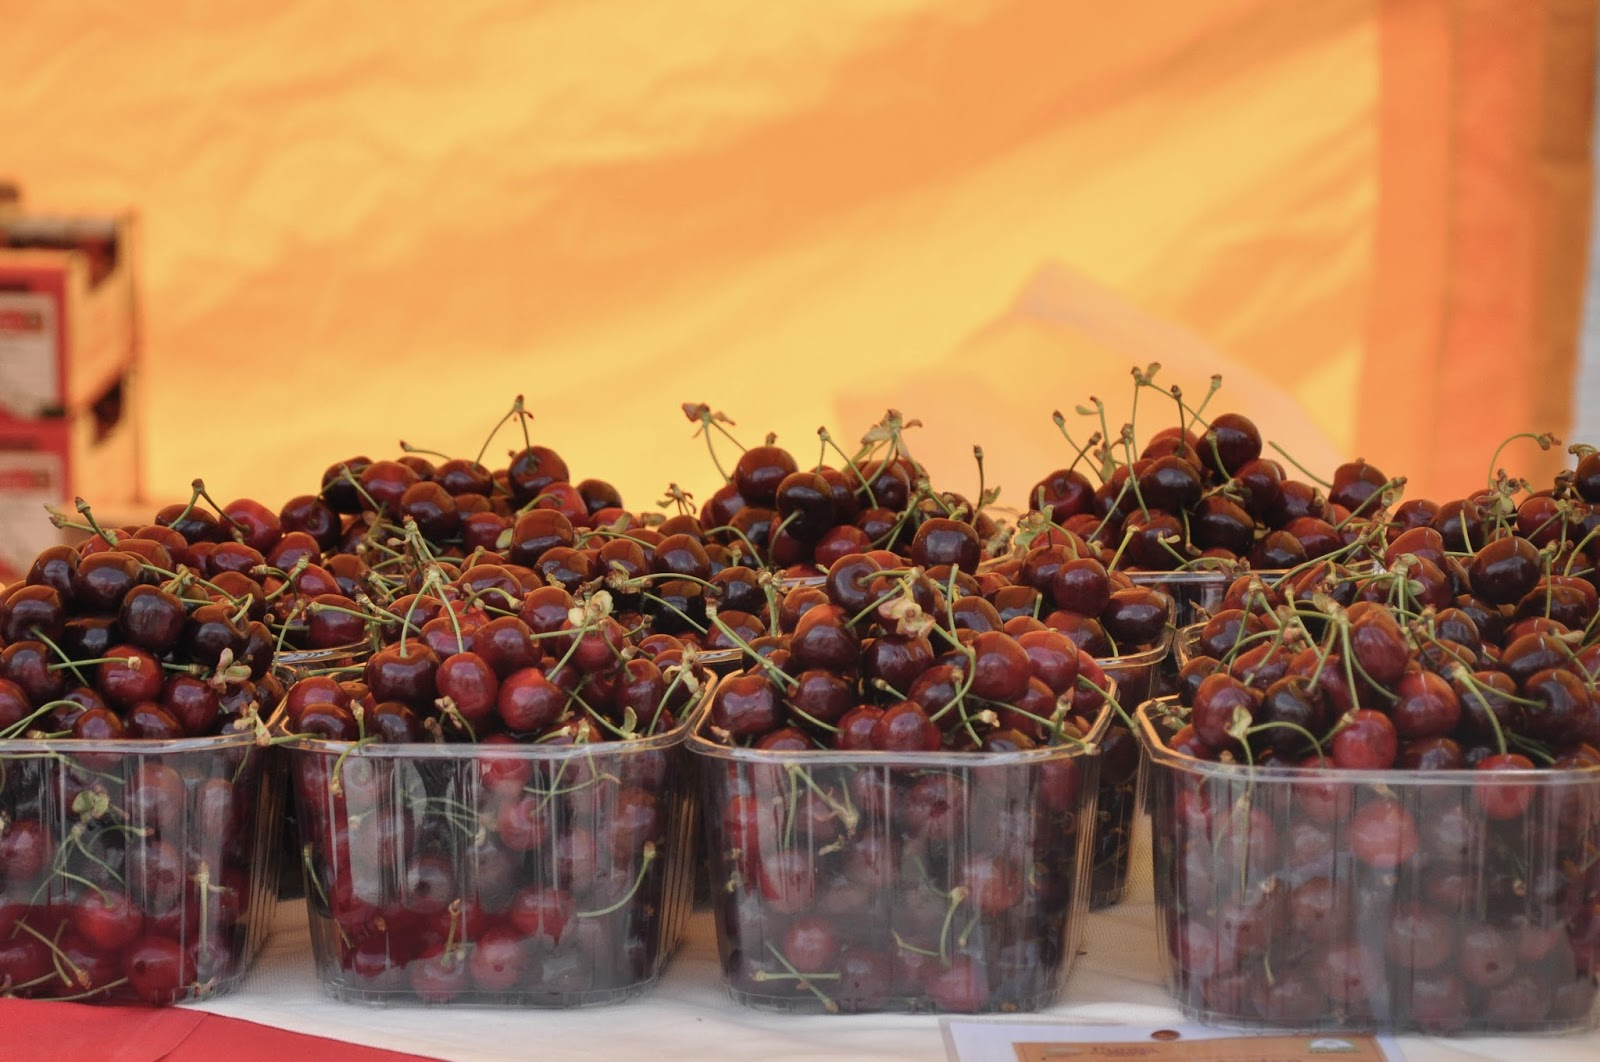 Close up of cherries ready for sale, Cherry Show Market, Marostica, Veneto, Italy